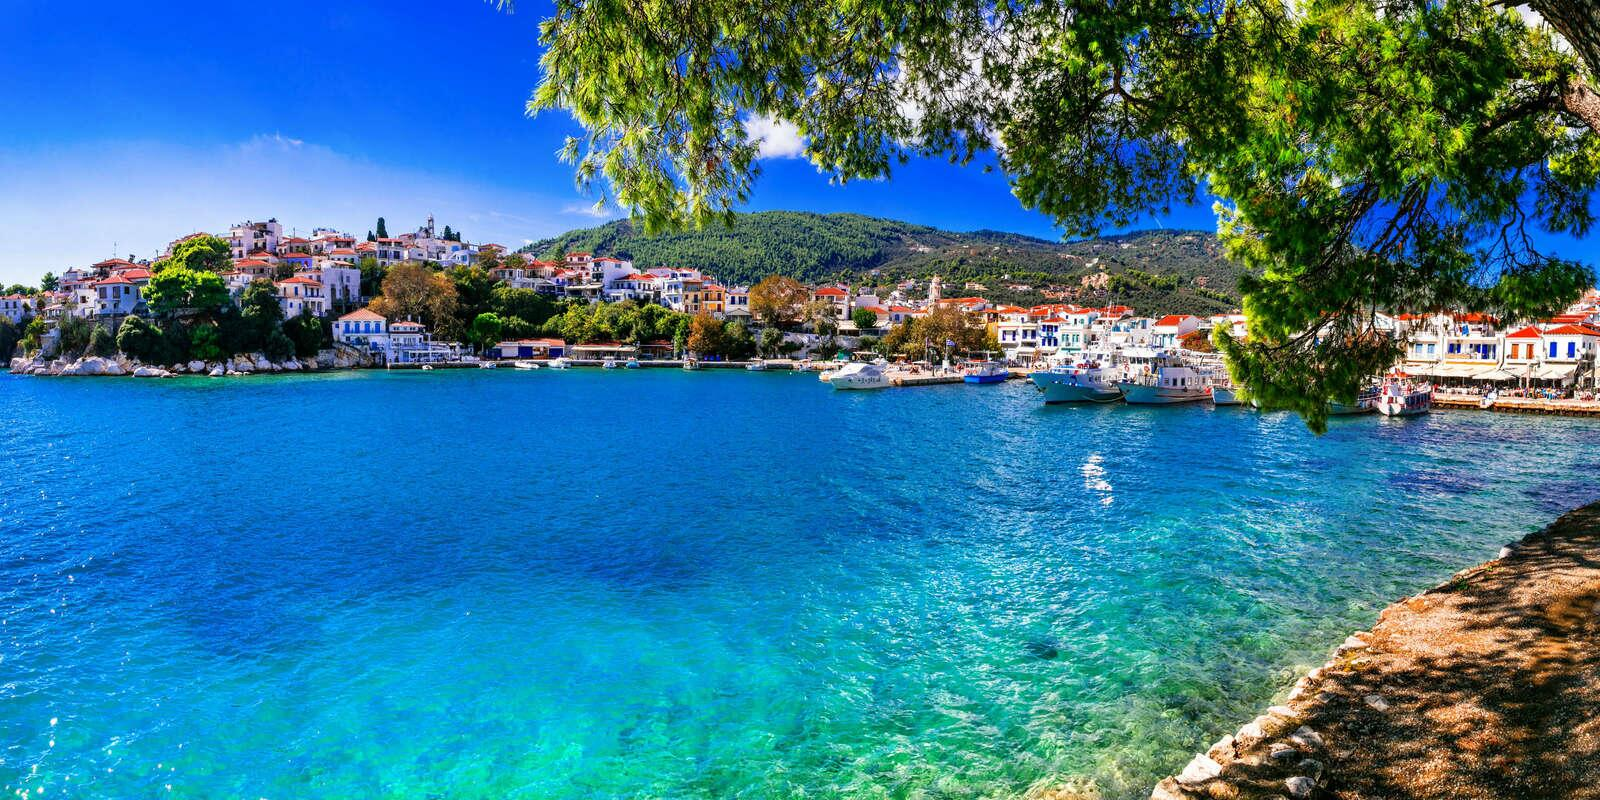 Sporades islands - Sailing holidays are more than just holidays